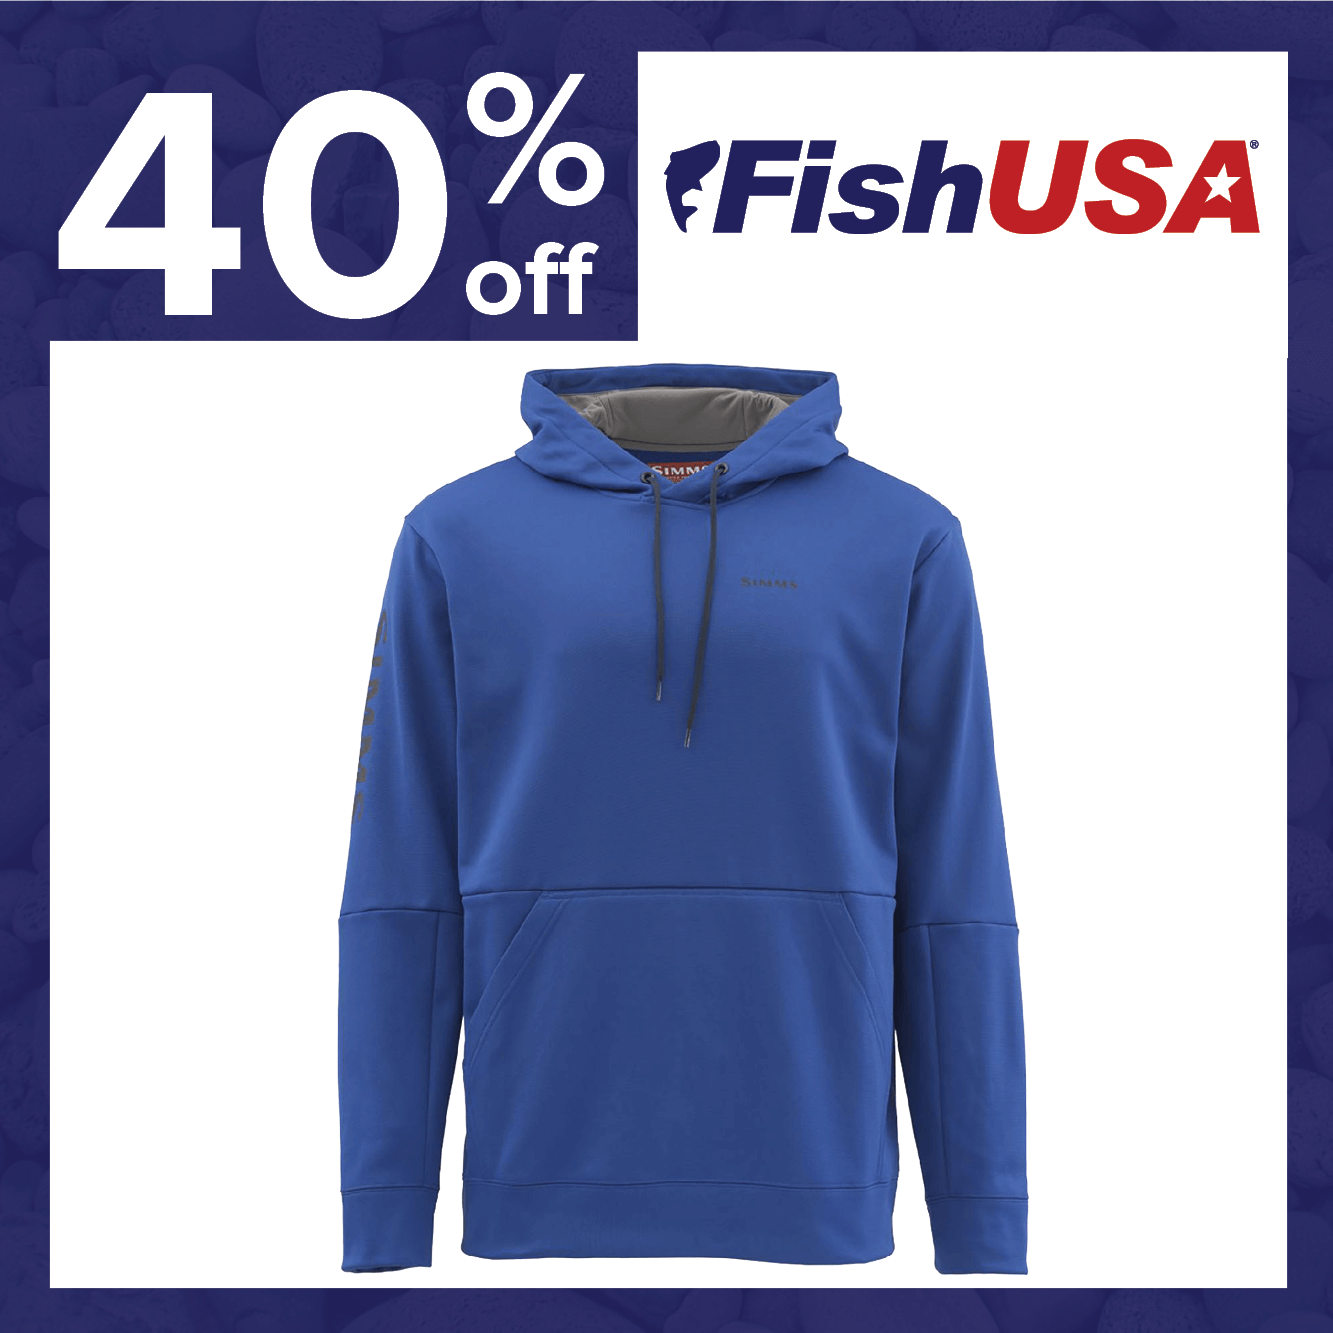 40% off the Simms Challenger Hoodie